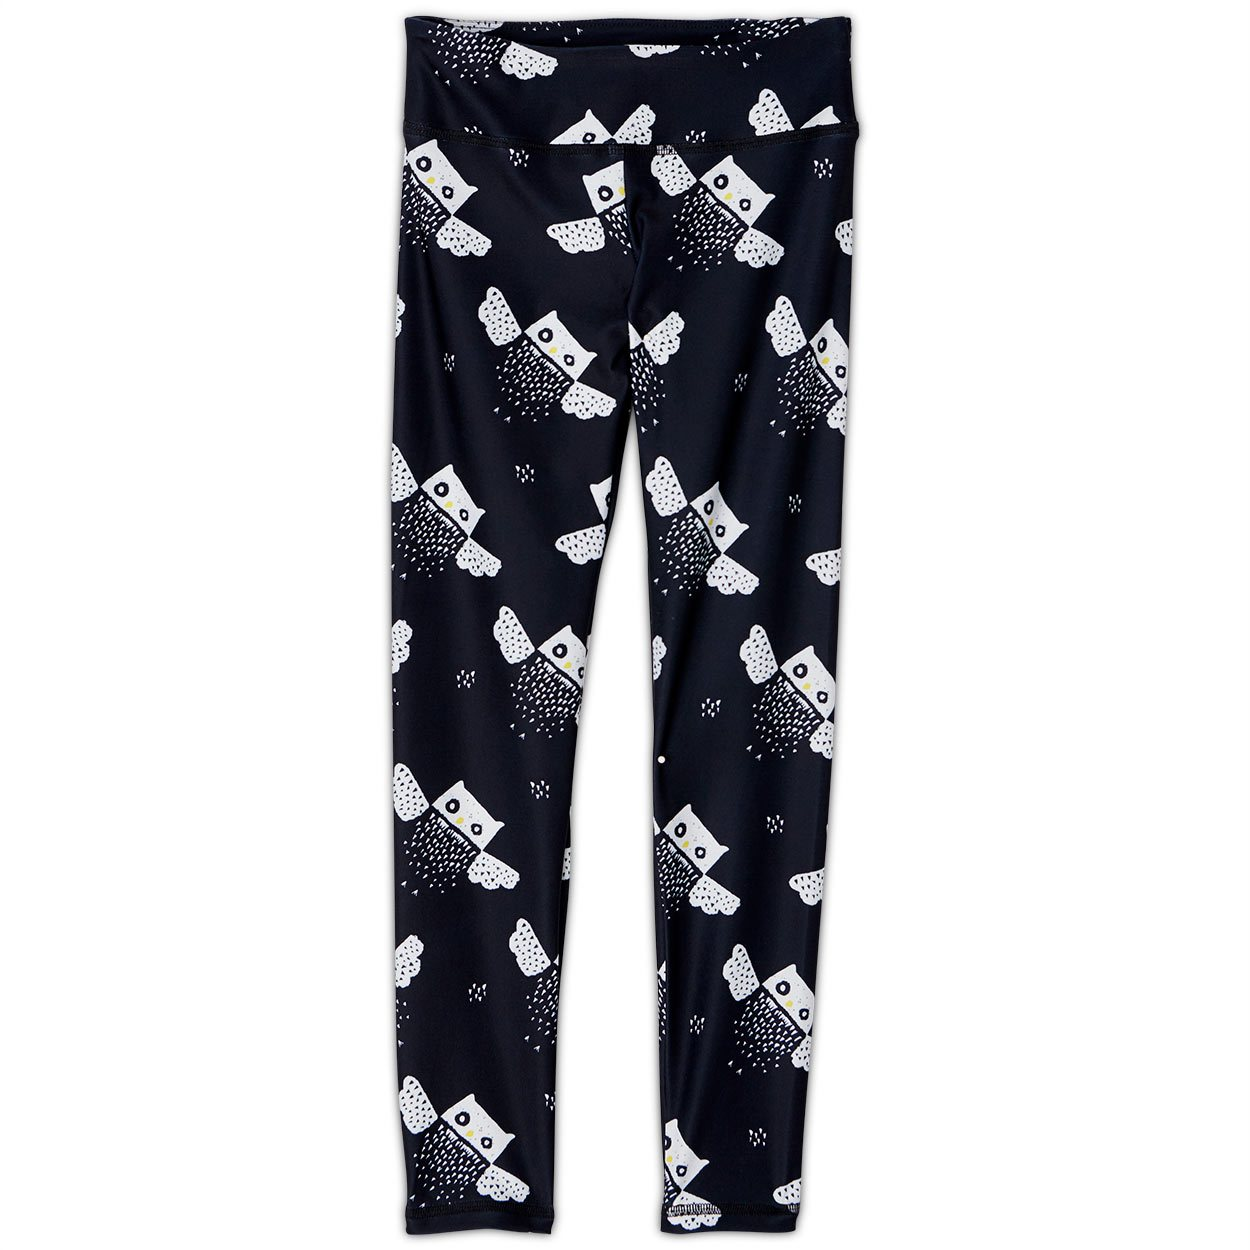 Owls Sunblocker Youth Leggings UPF 50+